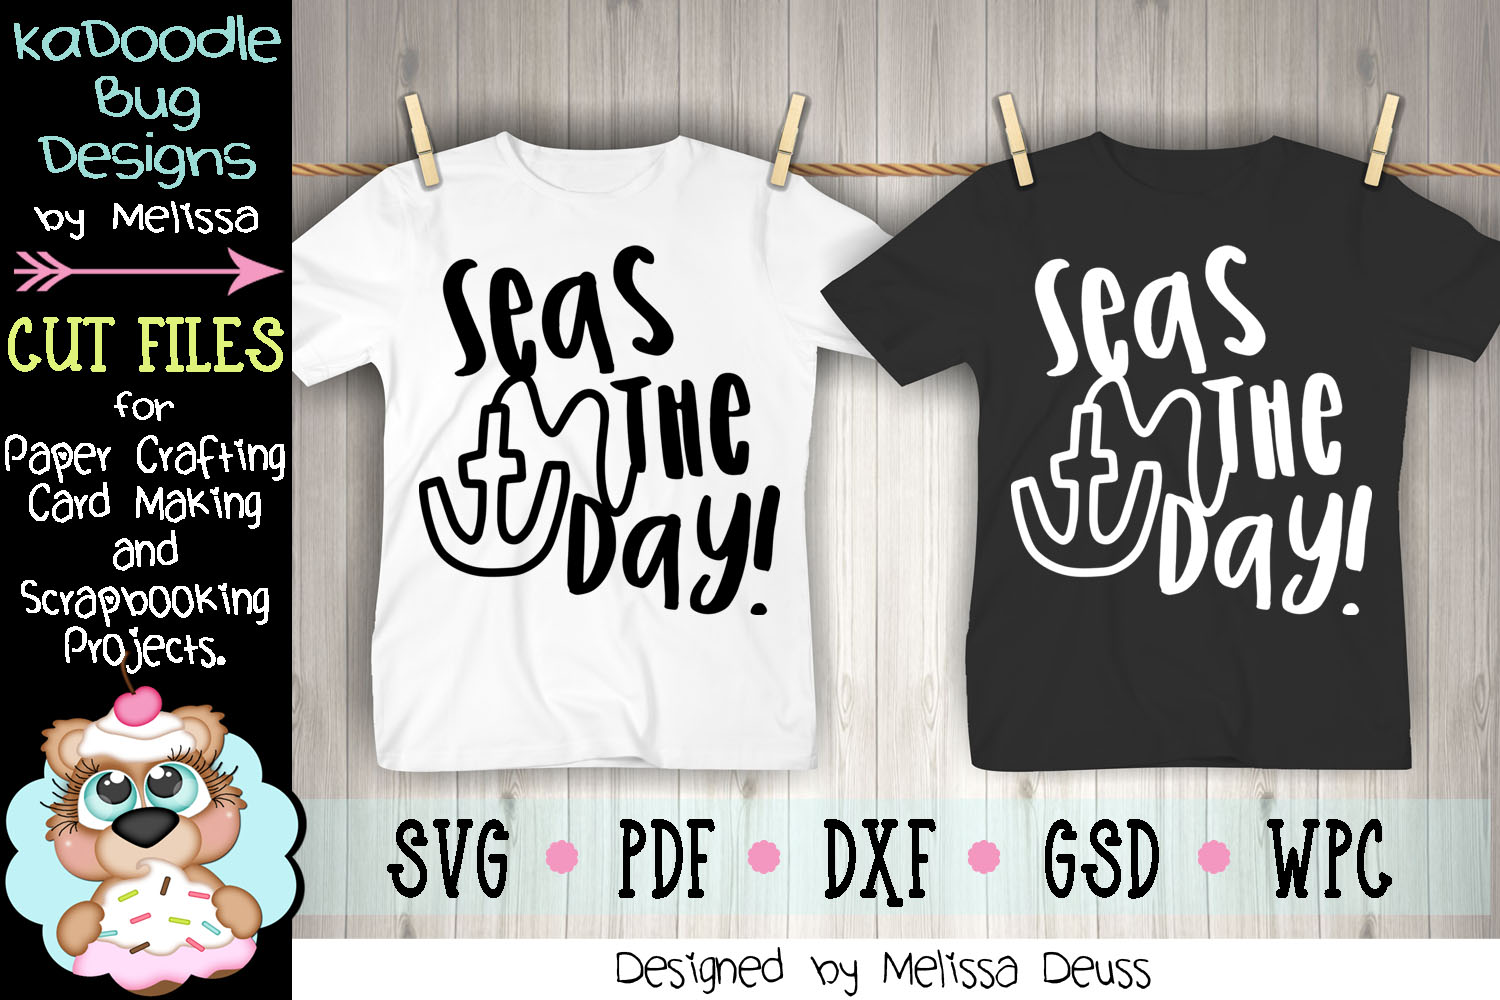 Seas The Day Cut File - SVG PDF DXF example image 3